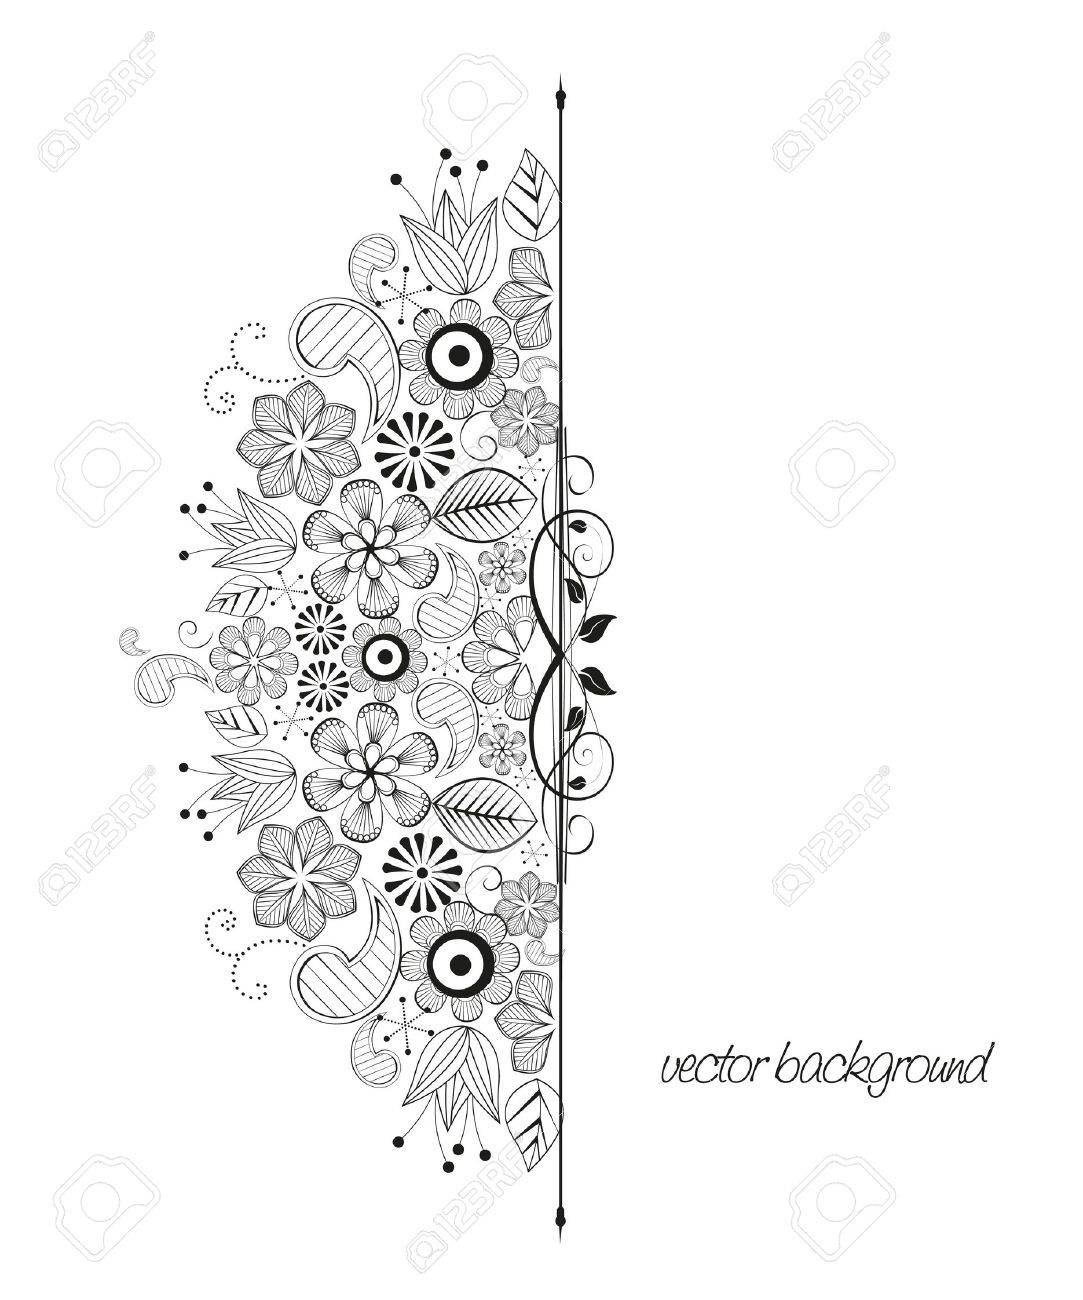 Floral Decoration floral decoration on white background royalty free cliparts